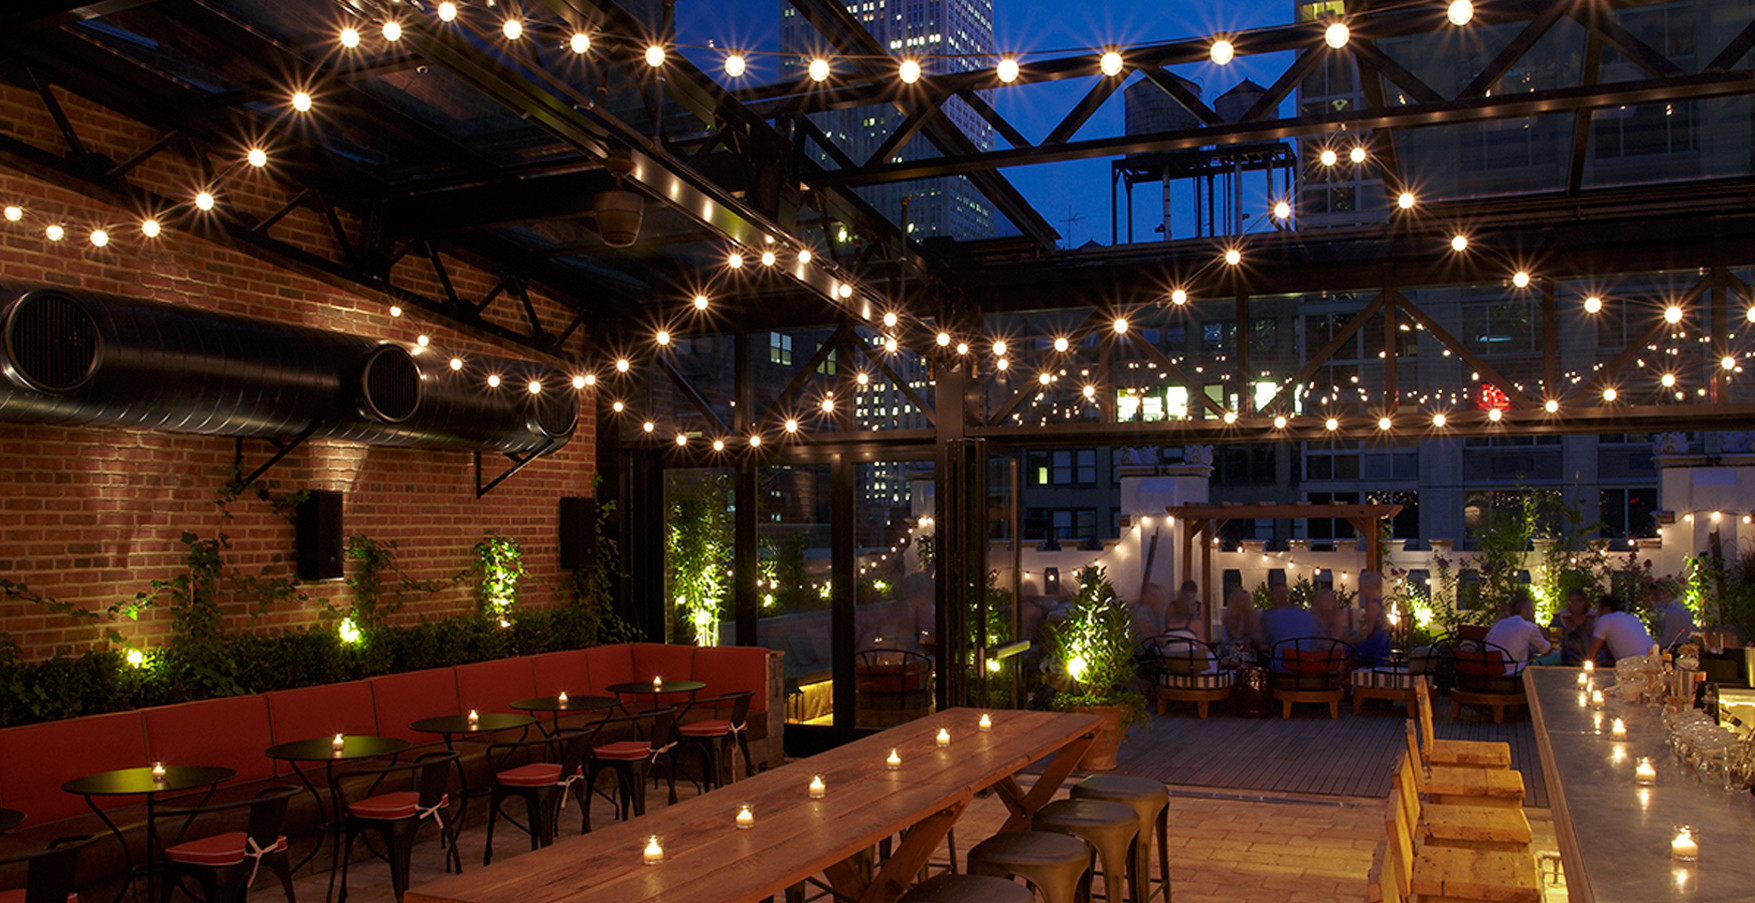 Heated NYC Rooftop Bars Perfect for Winter | Long Island ...